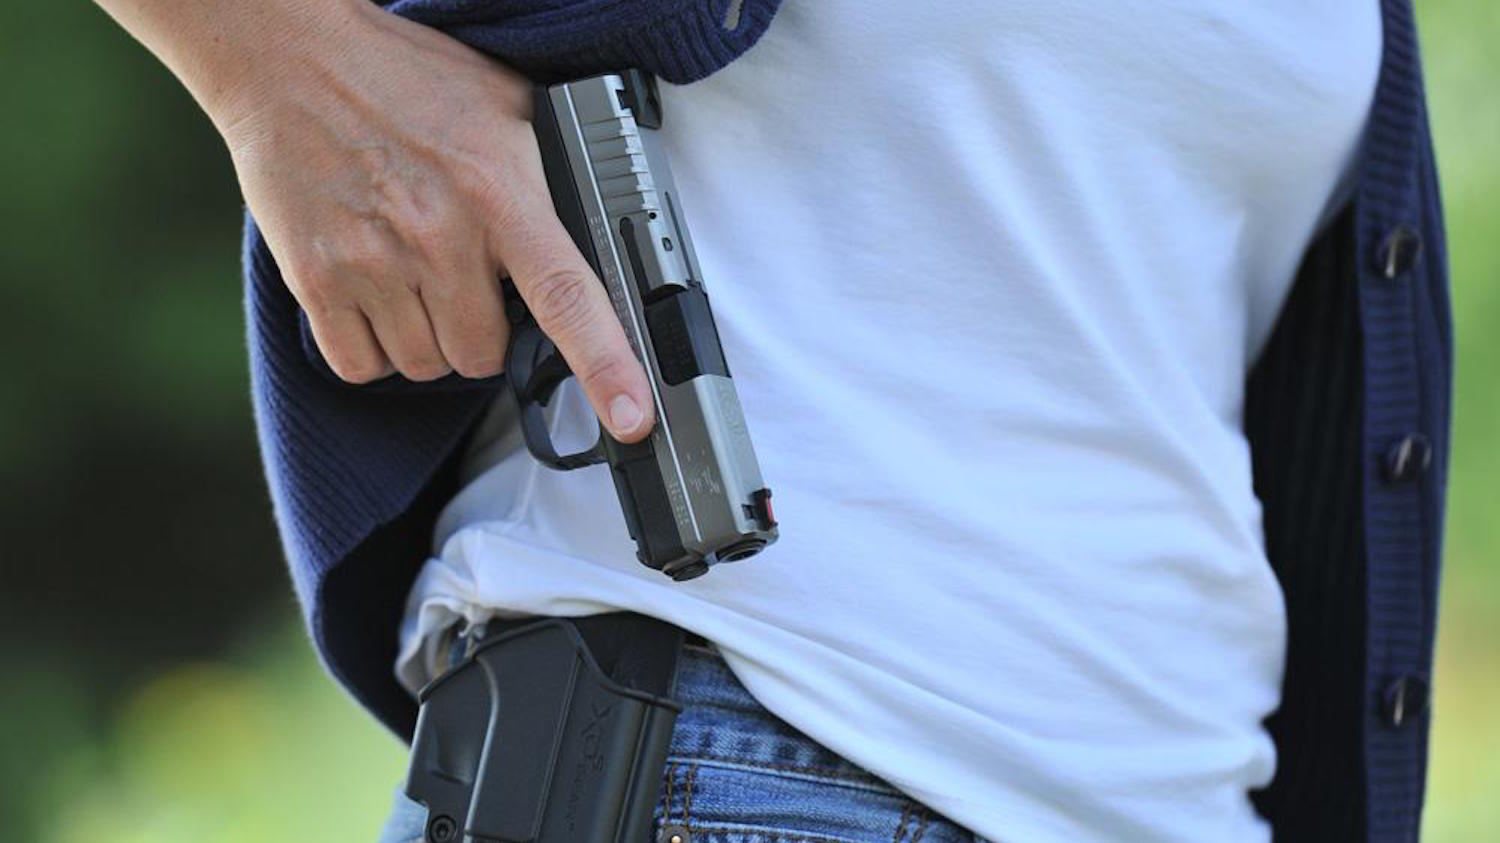 Drawing A Pistol From Concealment, Part 2: Re-holstering And Apparel Choices